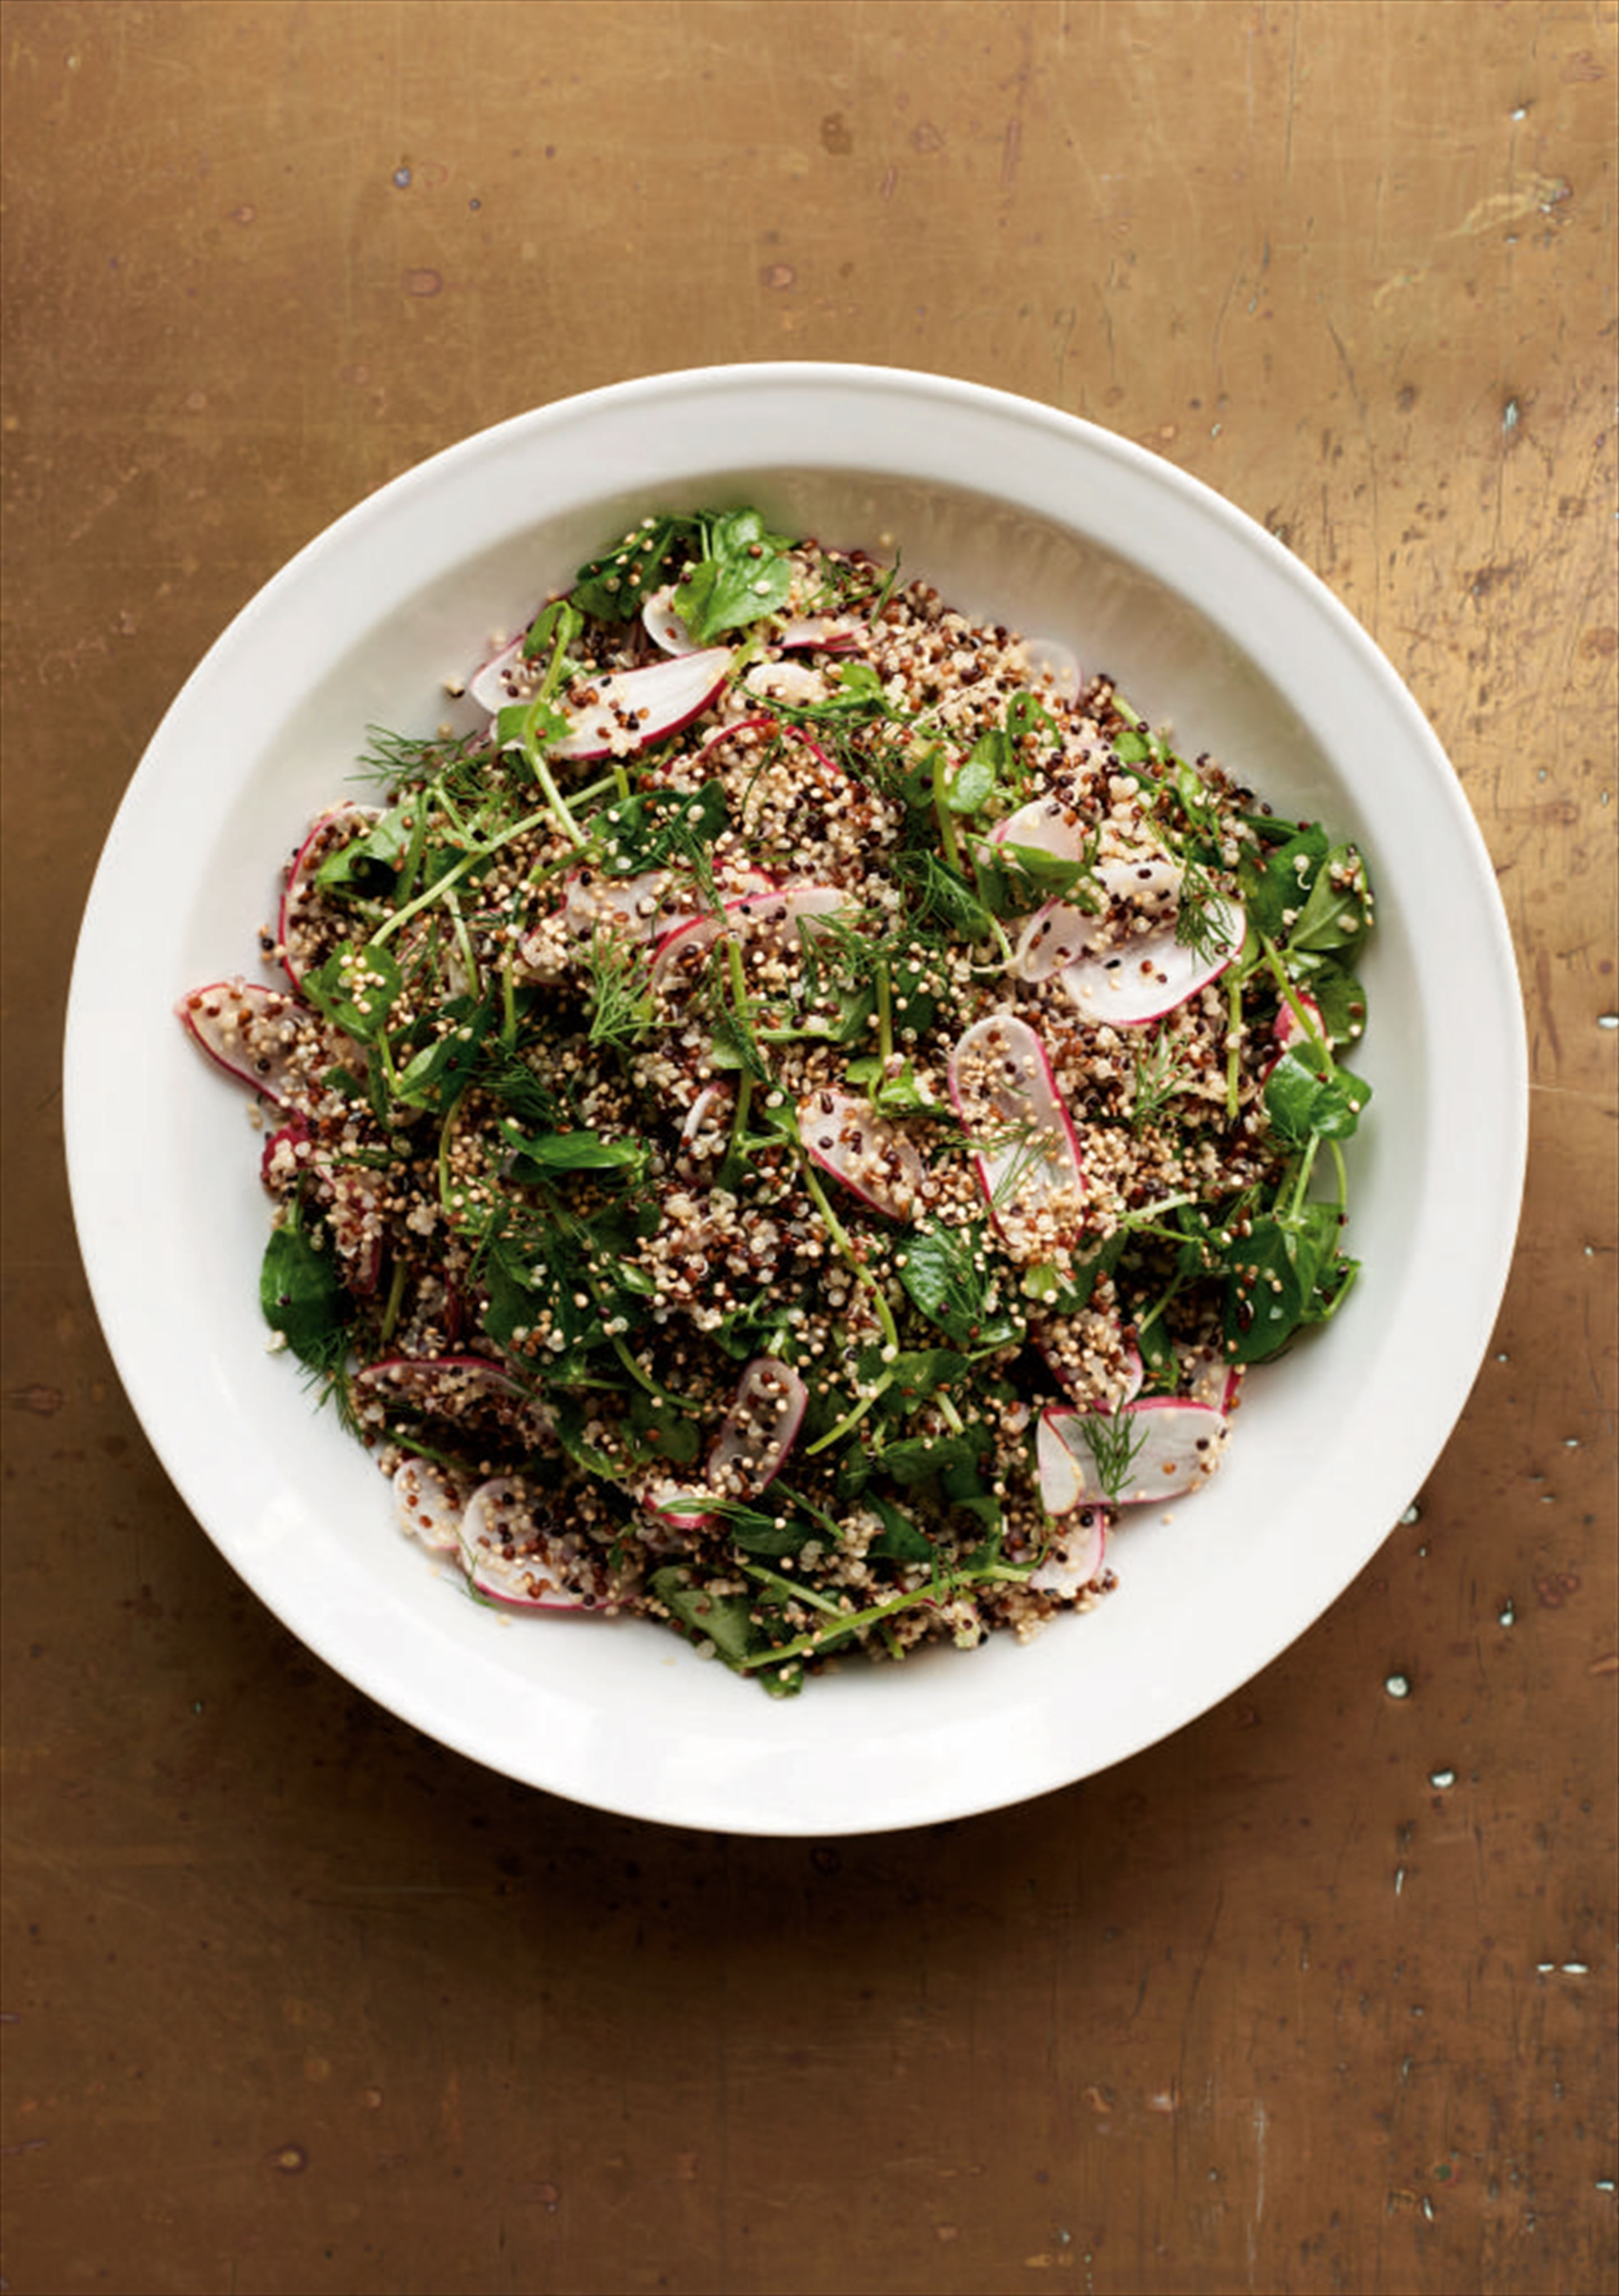 Mixed quinoa with radish and pea shoots